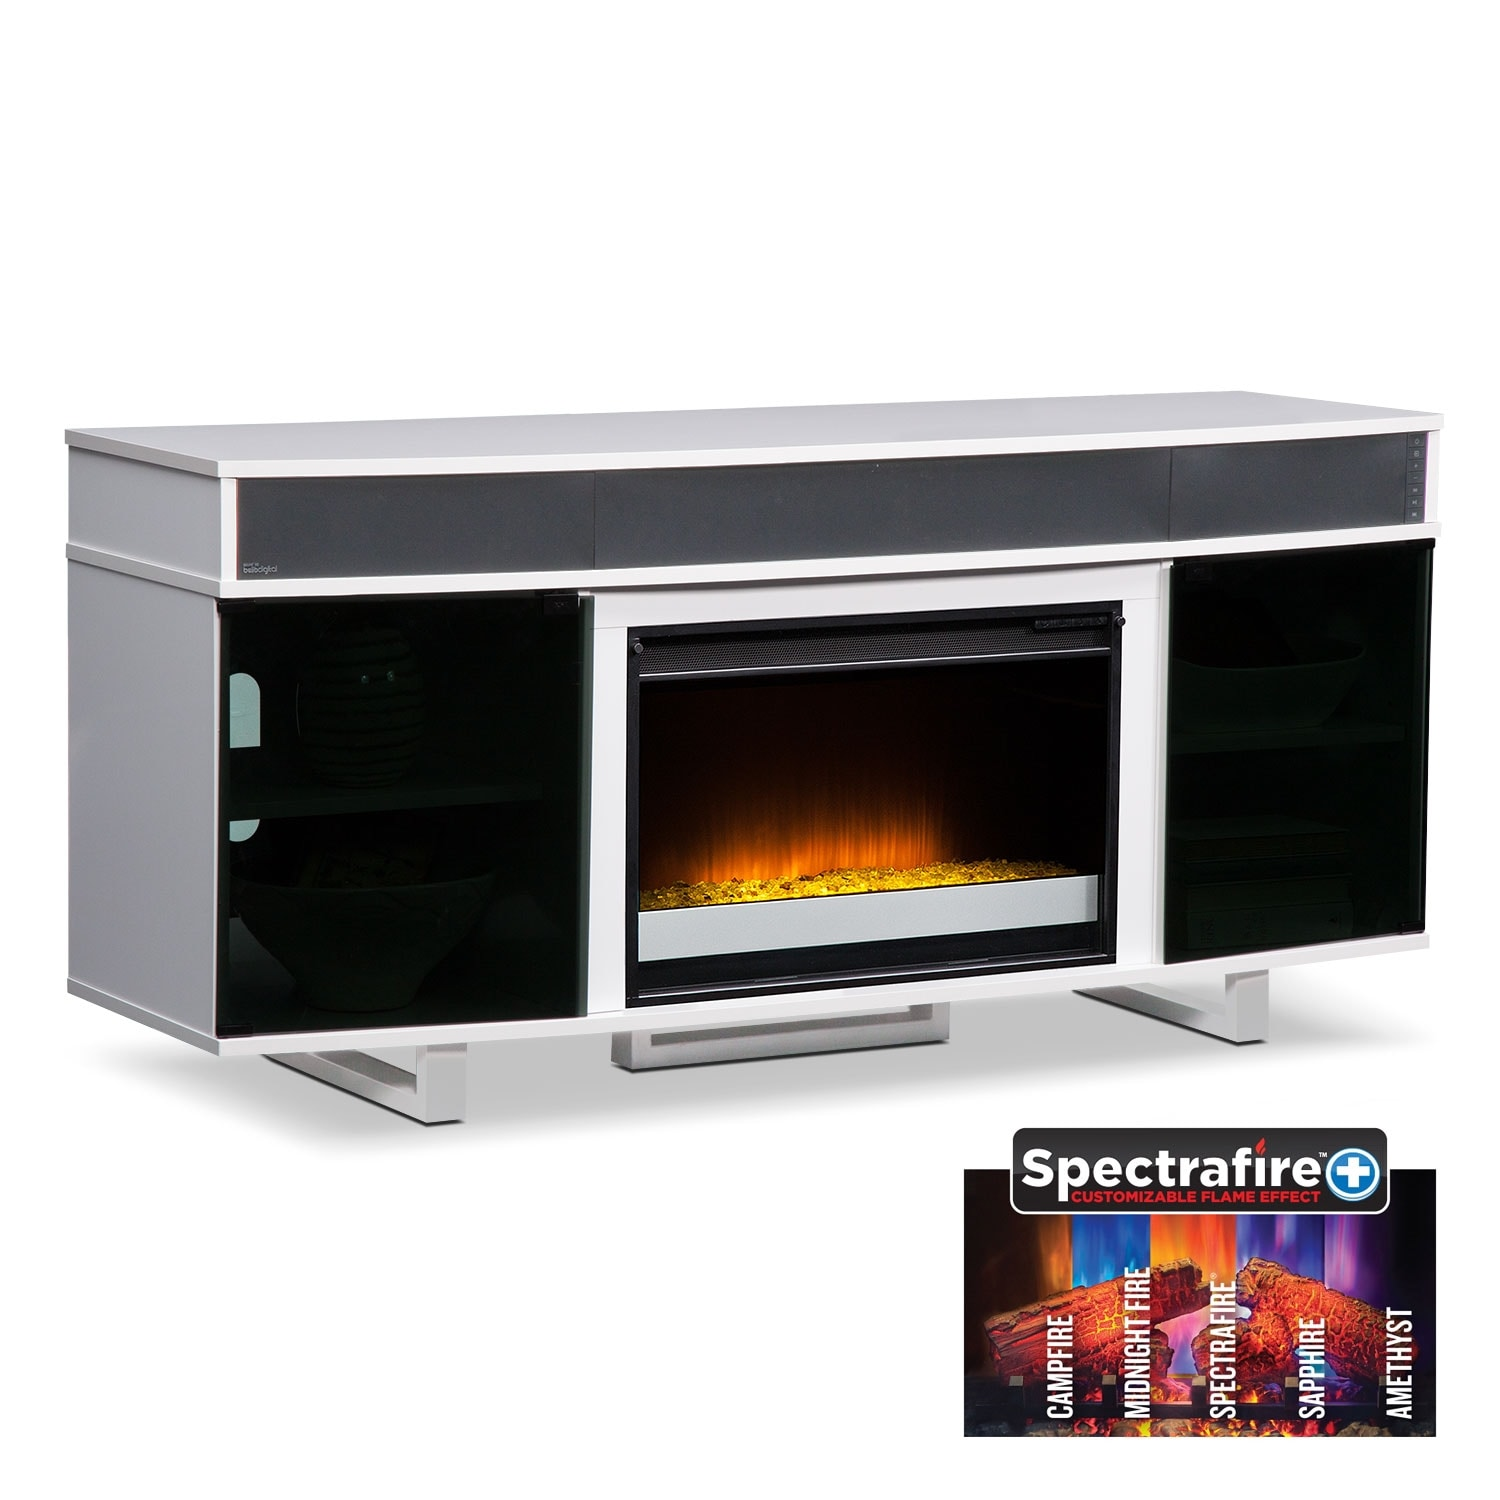 "Pacer White 64"" Contemporary Fireplace TV Stand with Sound"